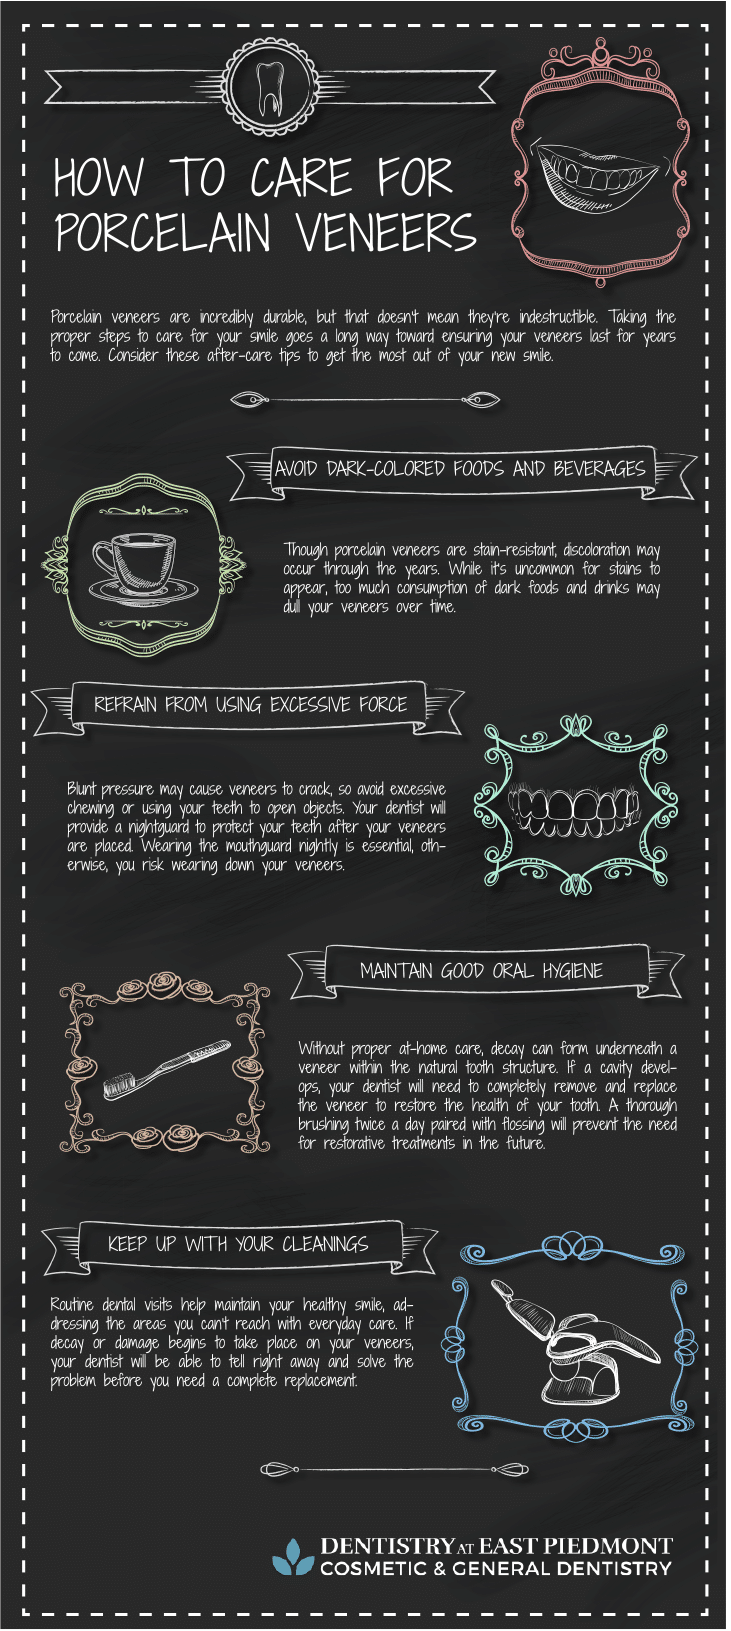 how to care for porcelain veneers infographic